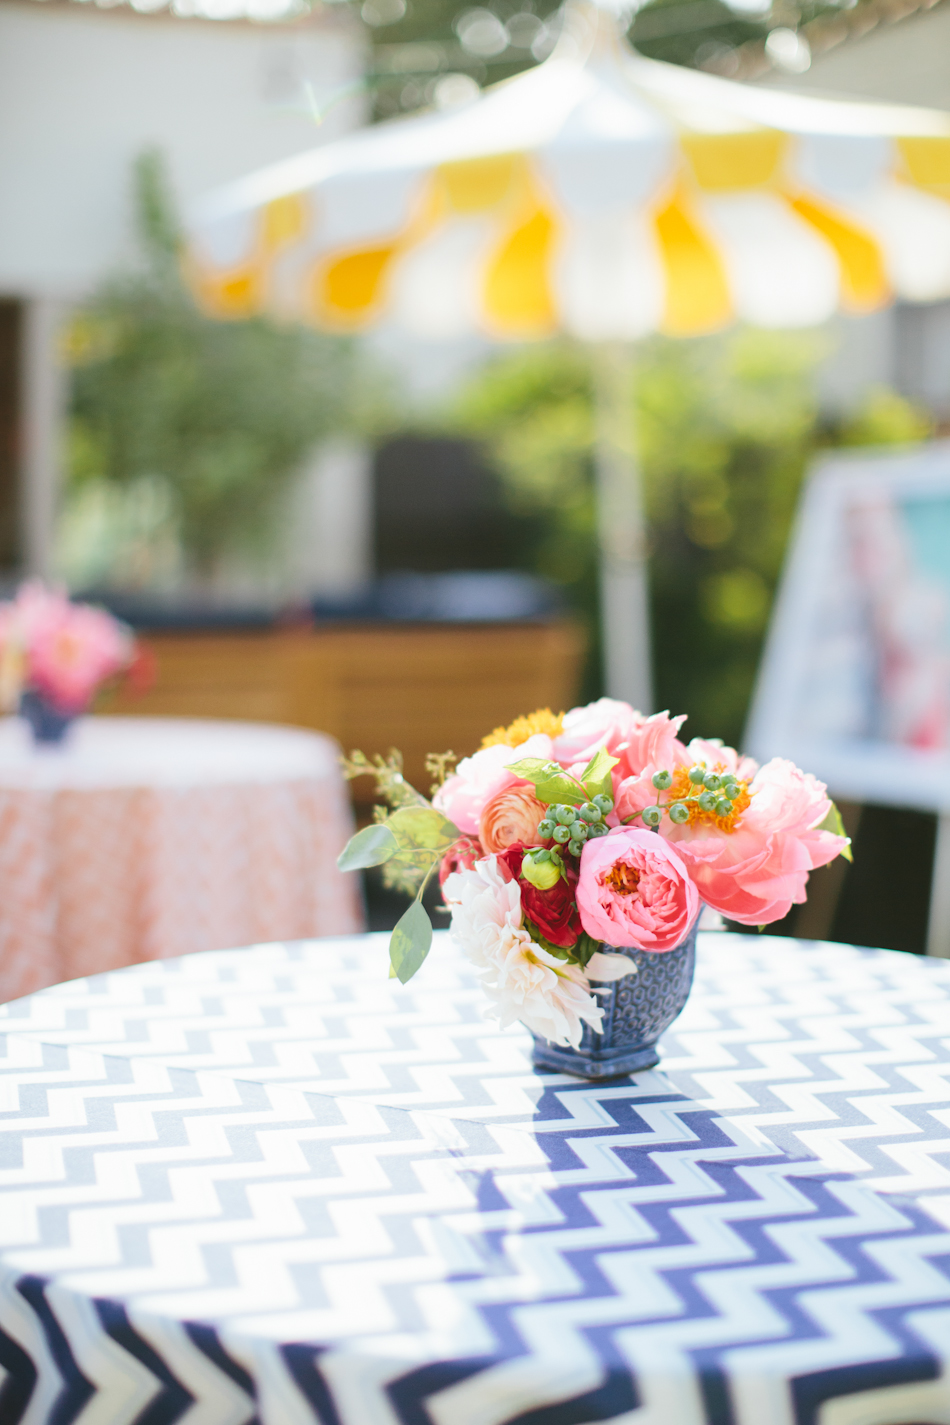 Gray Malin Launch Party, catering by Hungry Bear Catering Co., photography by Paige Jones